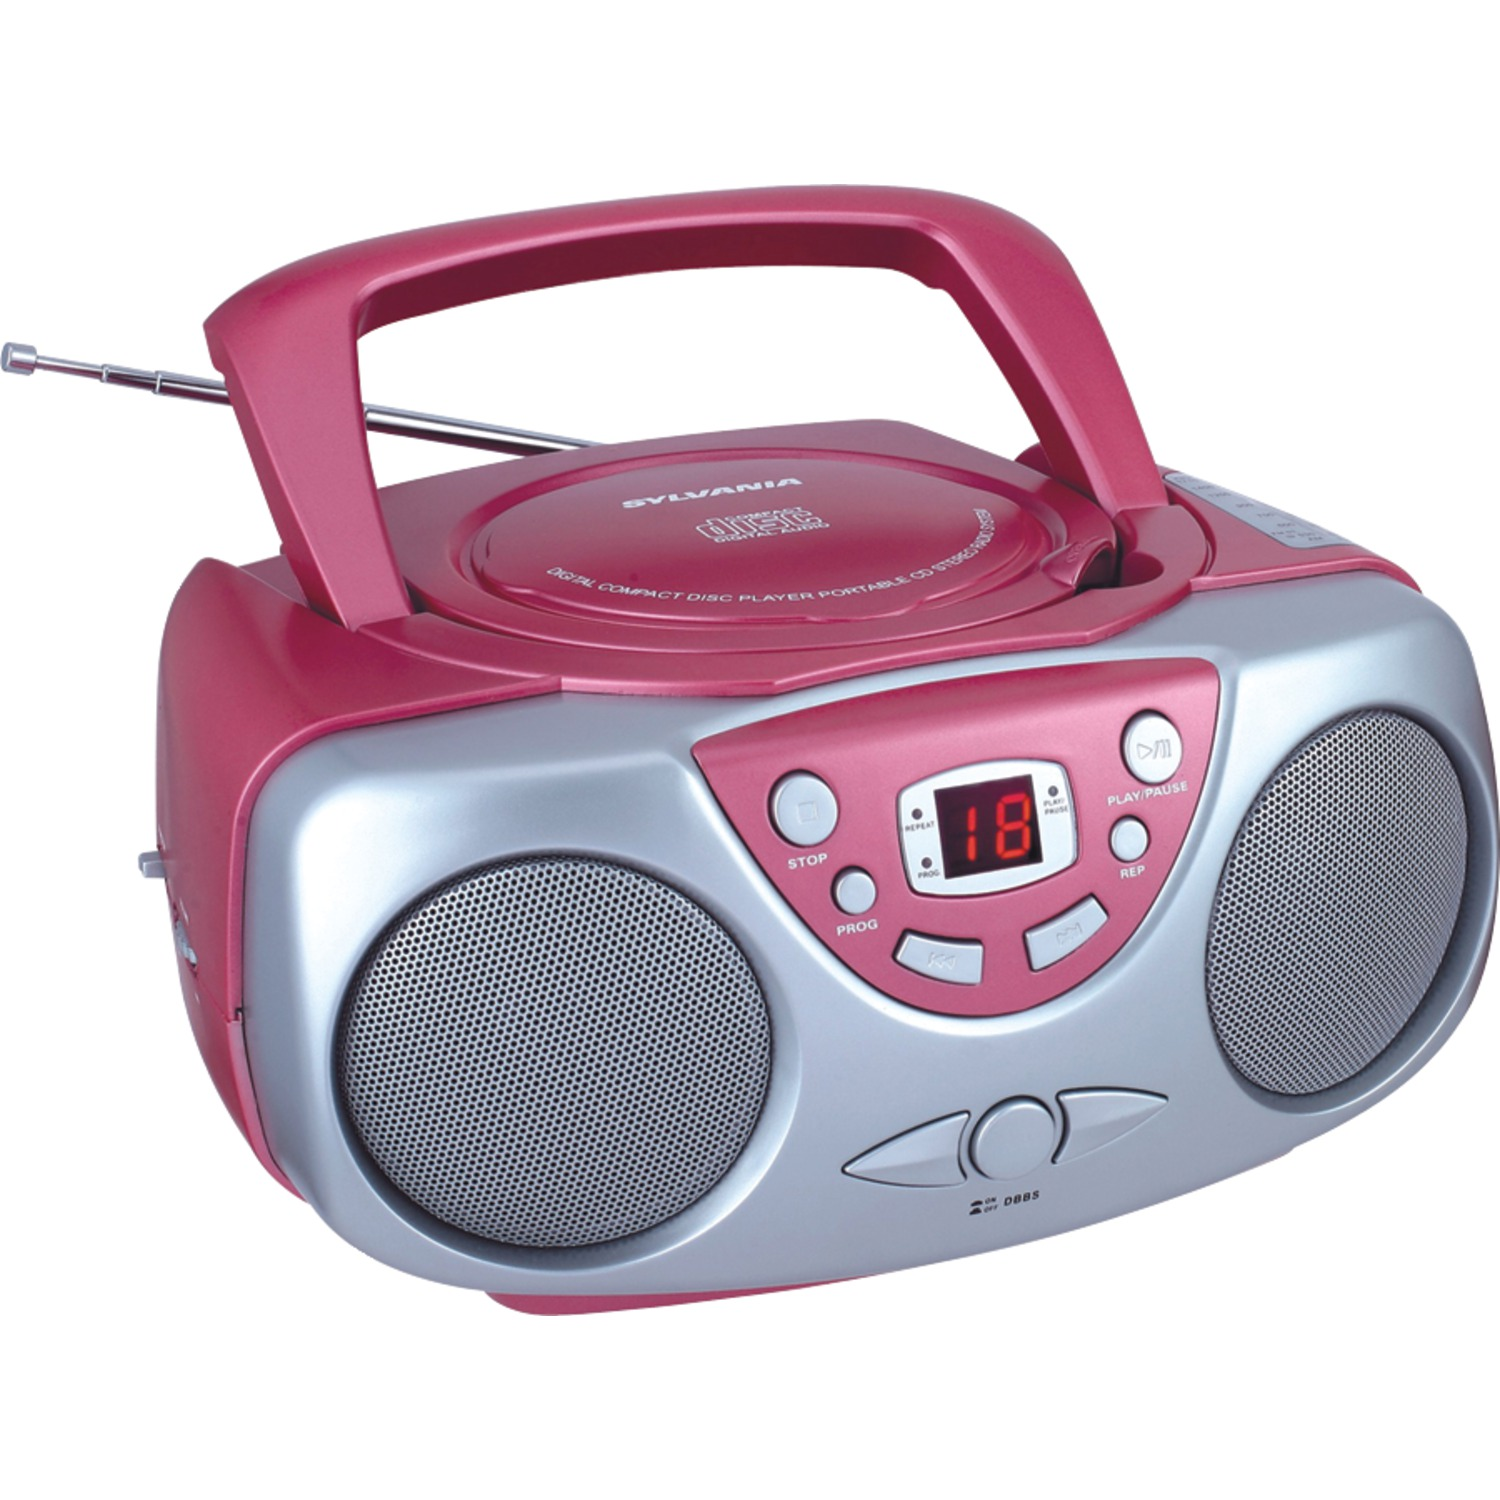 SYLVANIA SRCD243M Portable CD Boom Box with AM/FM Radio (Red)